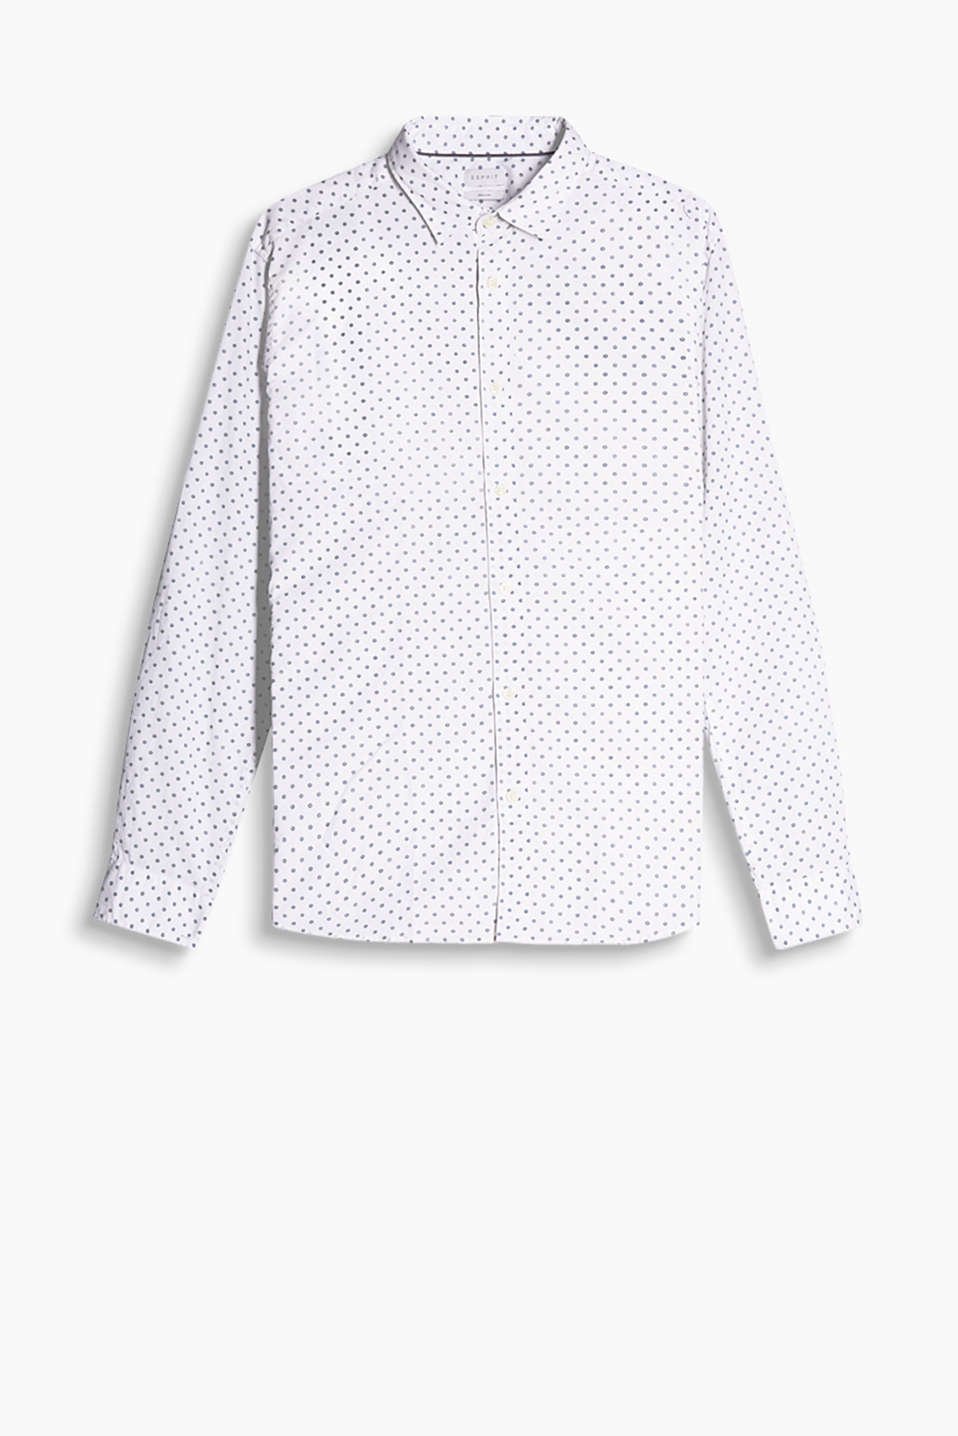 Shirt in soft cotton fabric with a narrow spread collar and turn-up sleeves